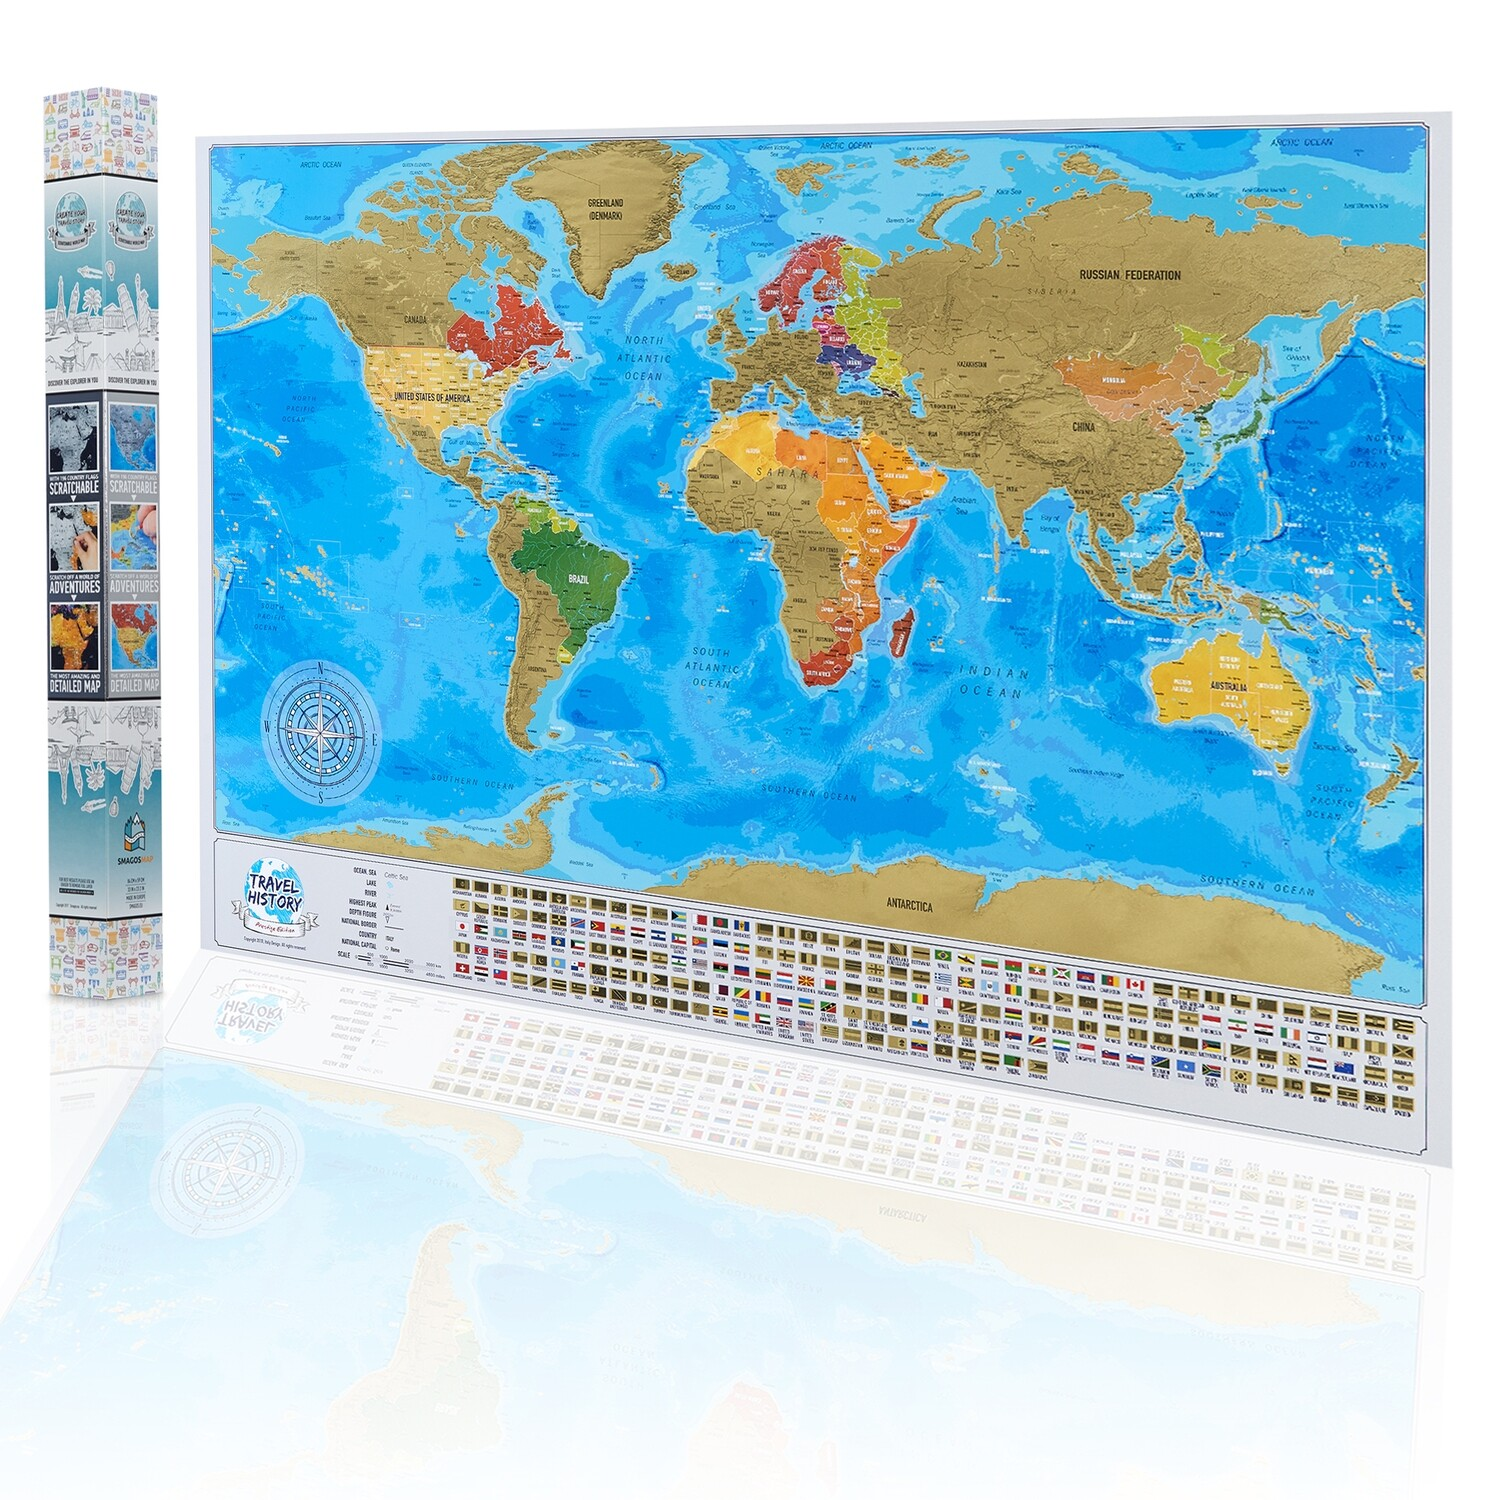 Best Birthday Gift for Friends - Personalized Weddings Gift - NEW Scratch off World Map - Adventure Map with Flags - XXL Scratch Travel Map, Available Map with Frame